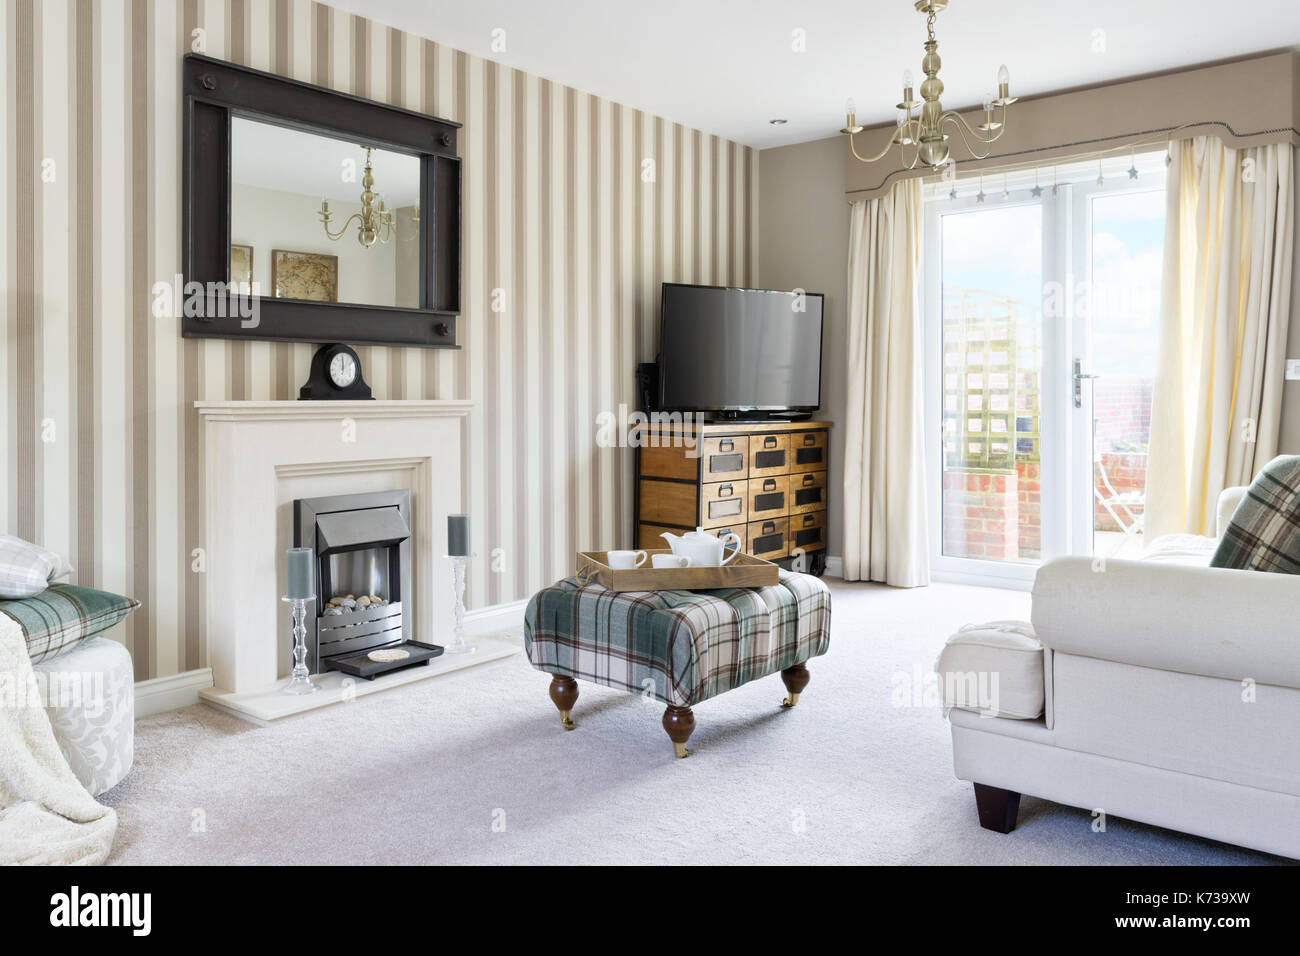 A stylish, interior designed living room in a contemporary UK home - Stock Image